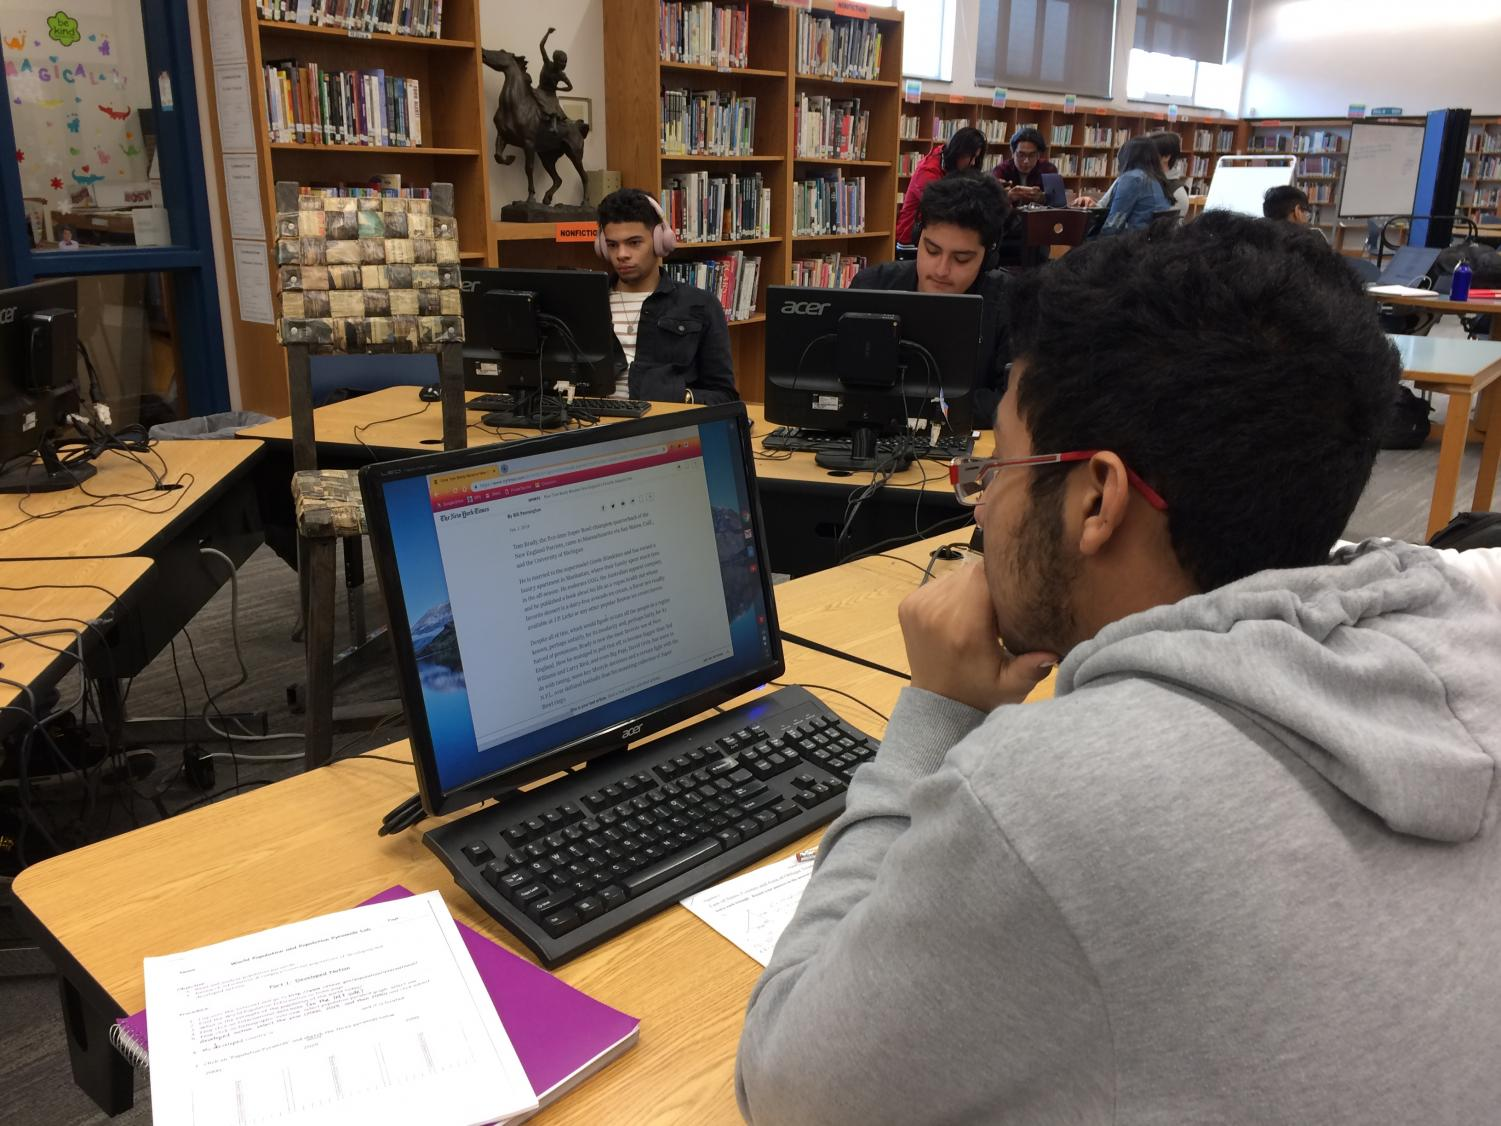 Senior Angel Almonte in the LLC reads a New York Times article about Patriots quarterback Tom Brady becoming New England's favorite adopted son.